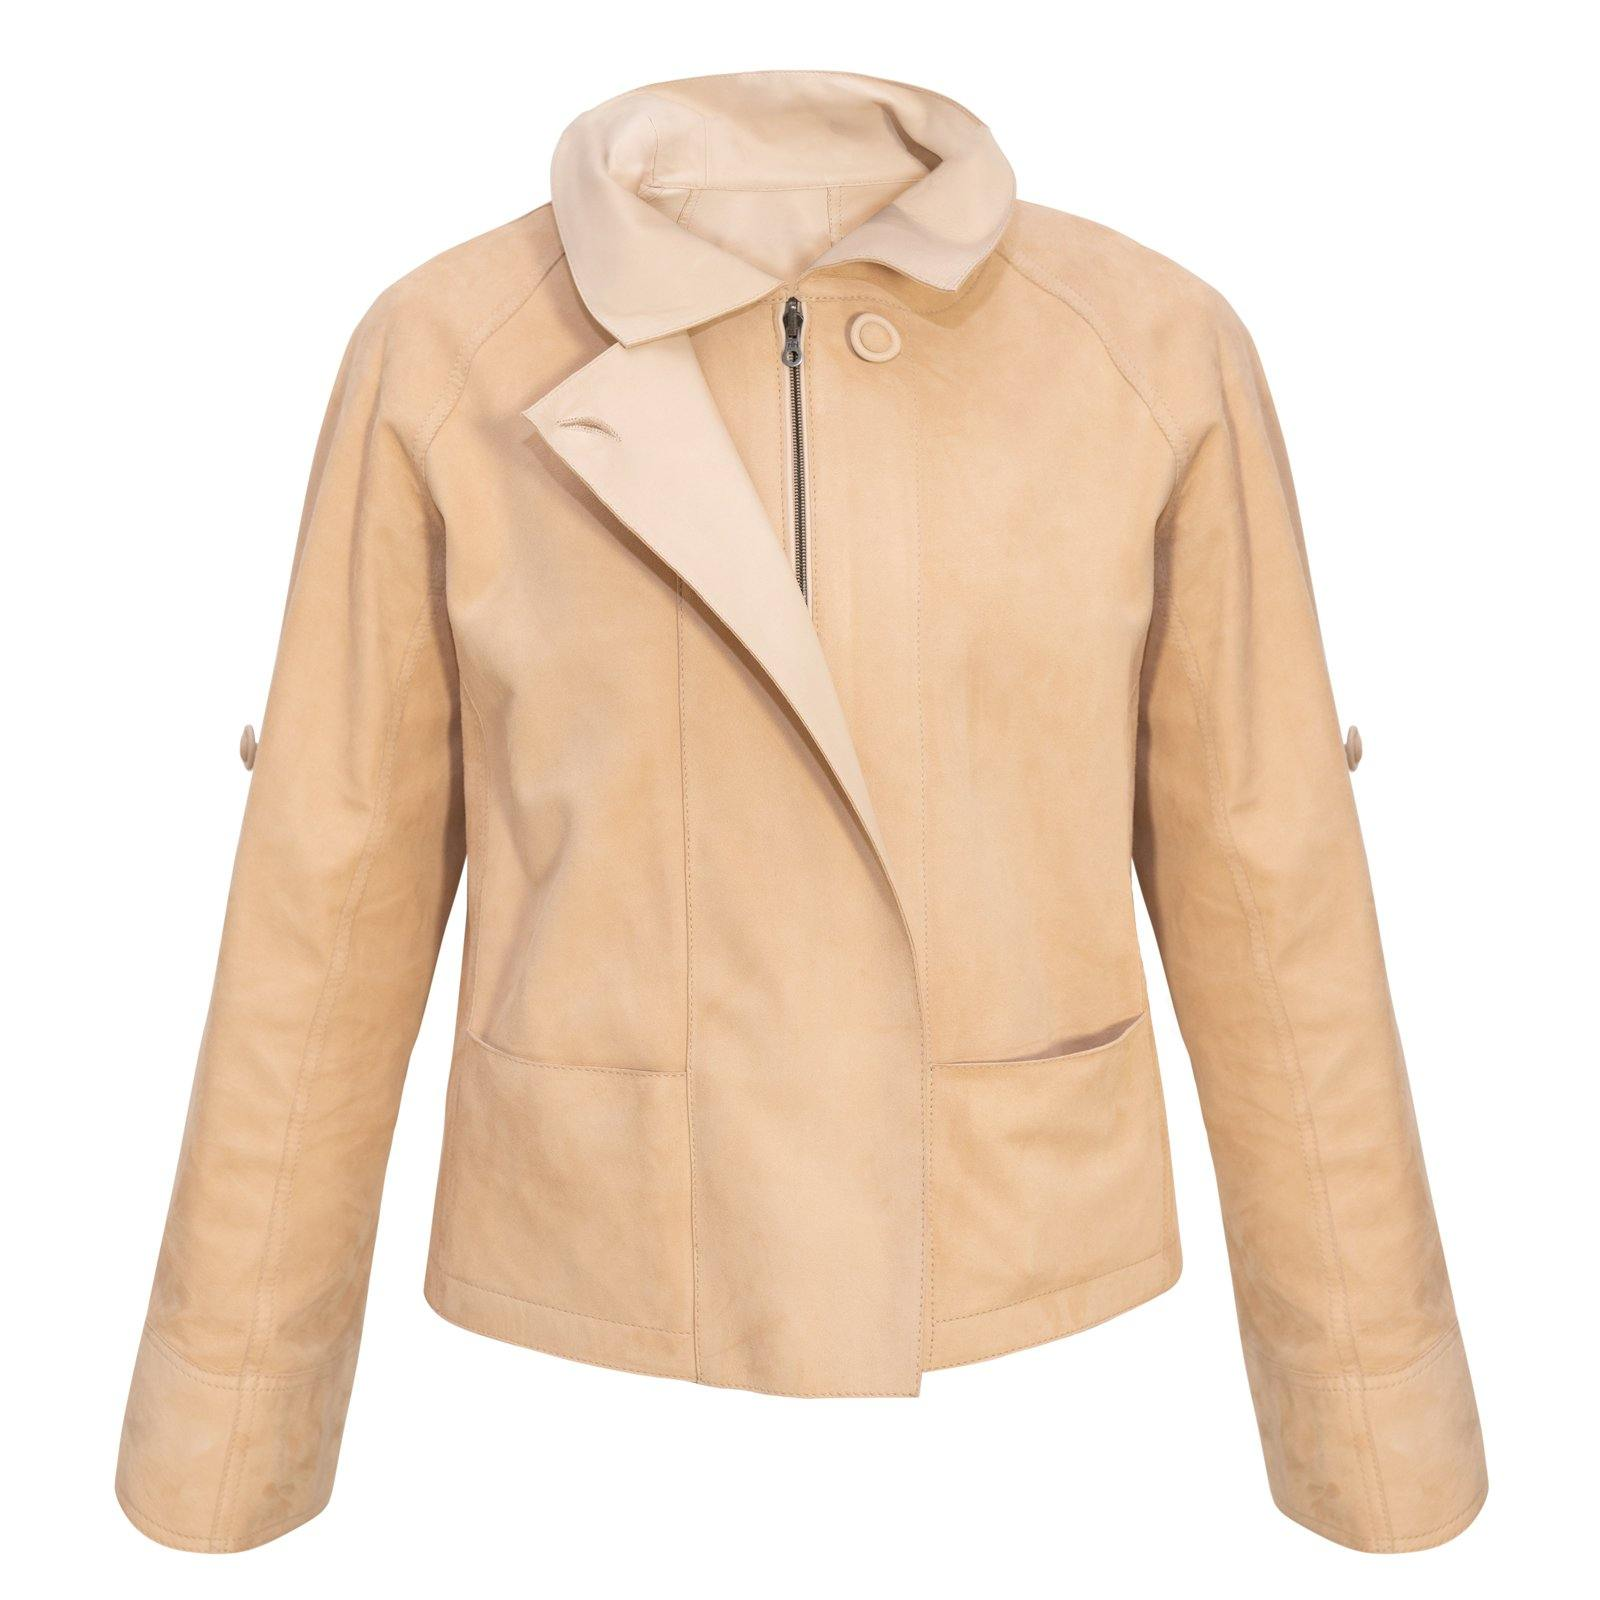 Audrey Reversible Pieno Fiore Leather Jacket in Nude